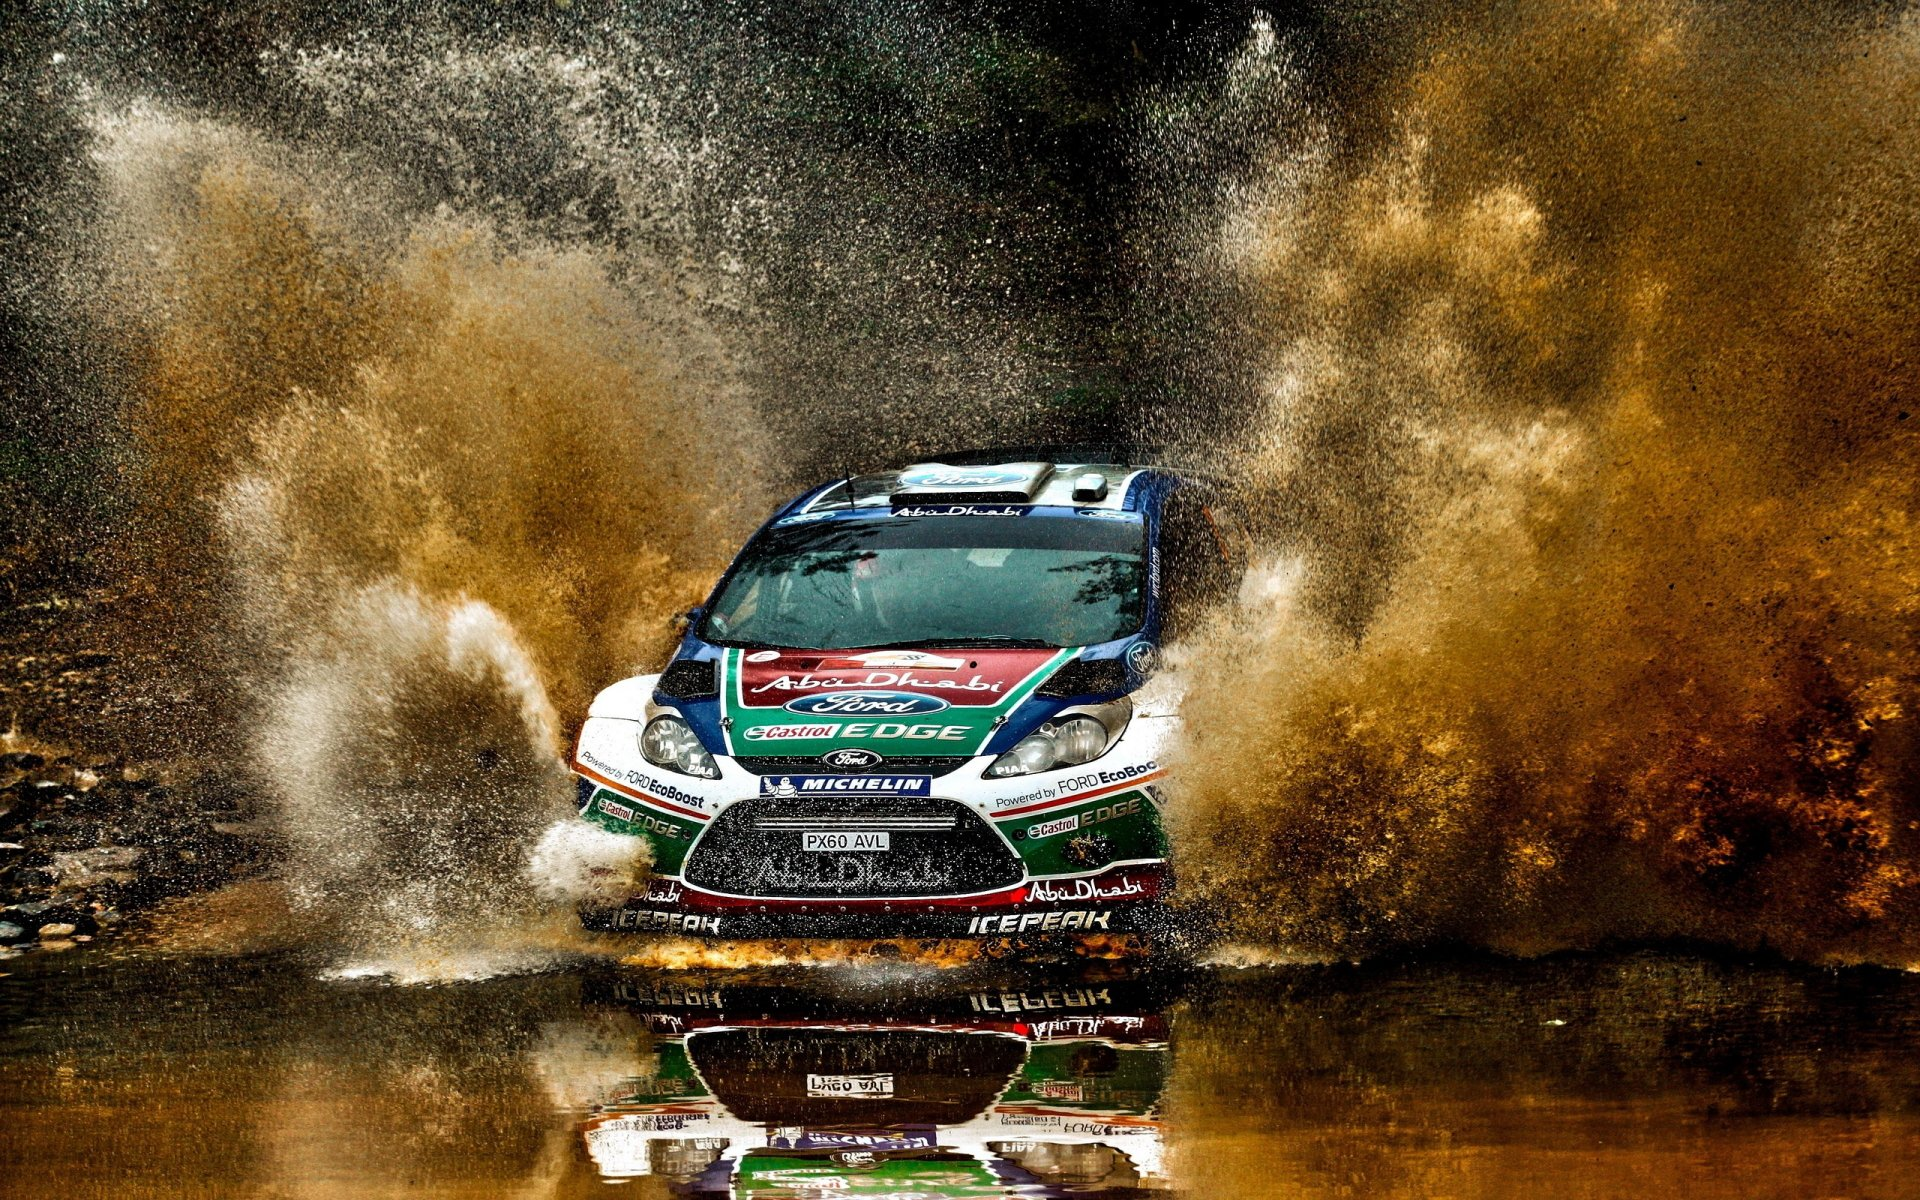 202 Rallying Hd Wallpapers Background Images Wallpaper Abyss